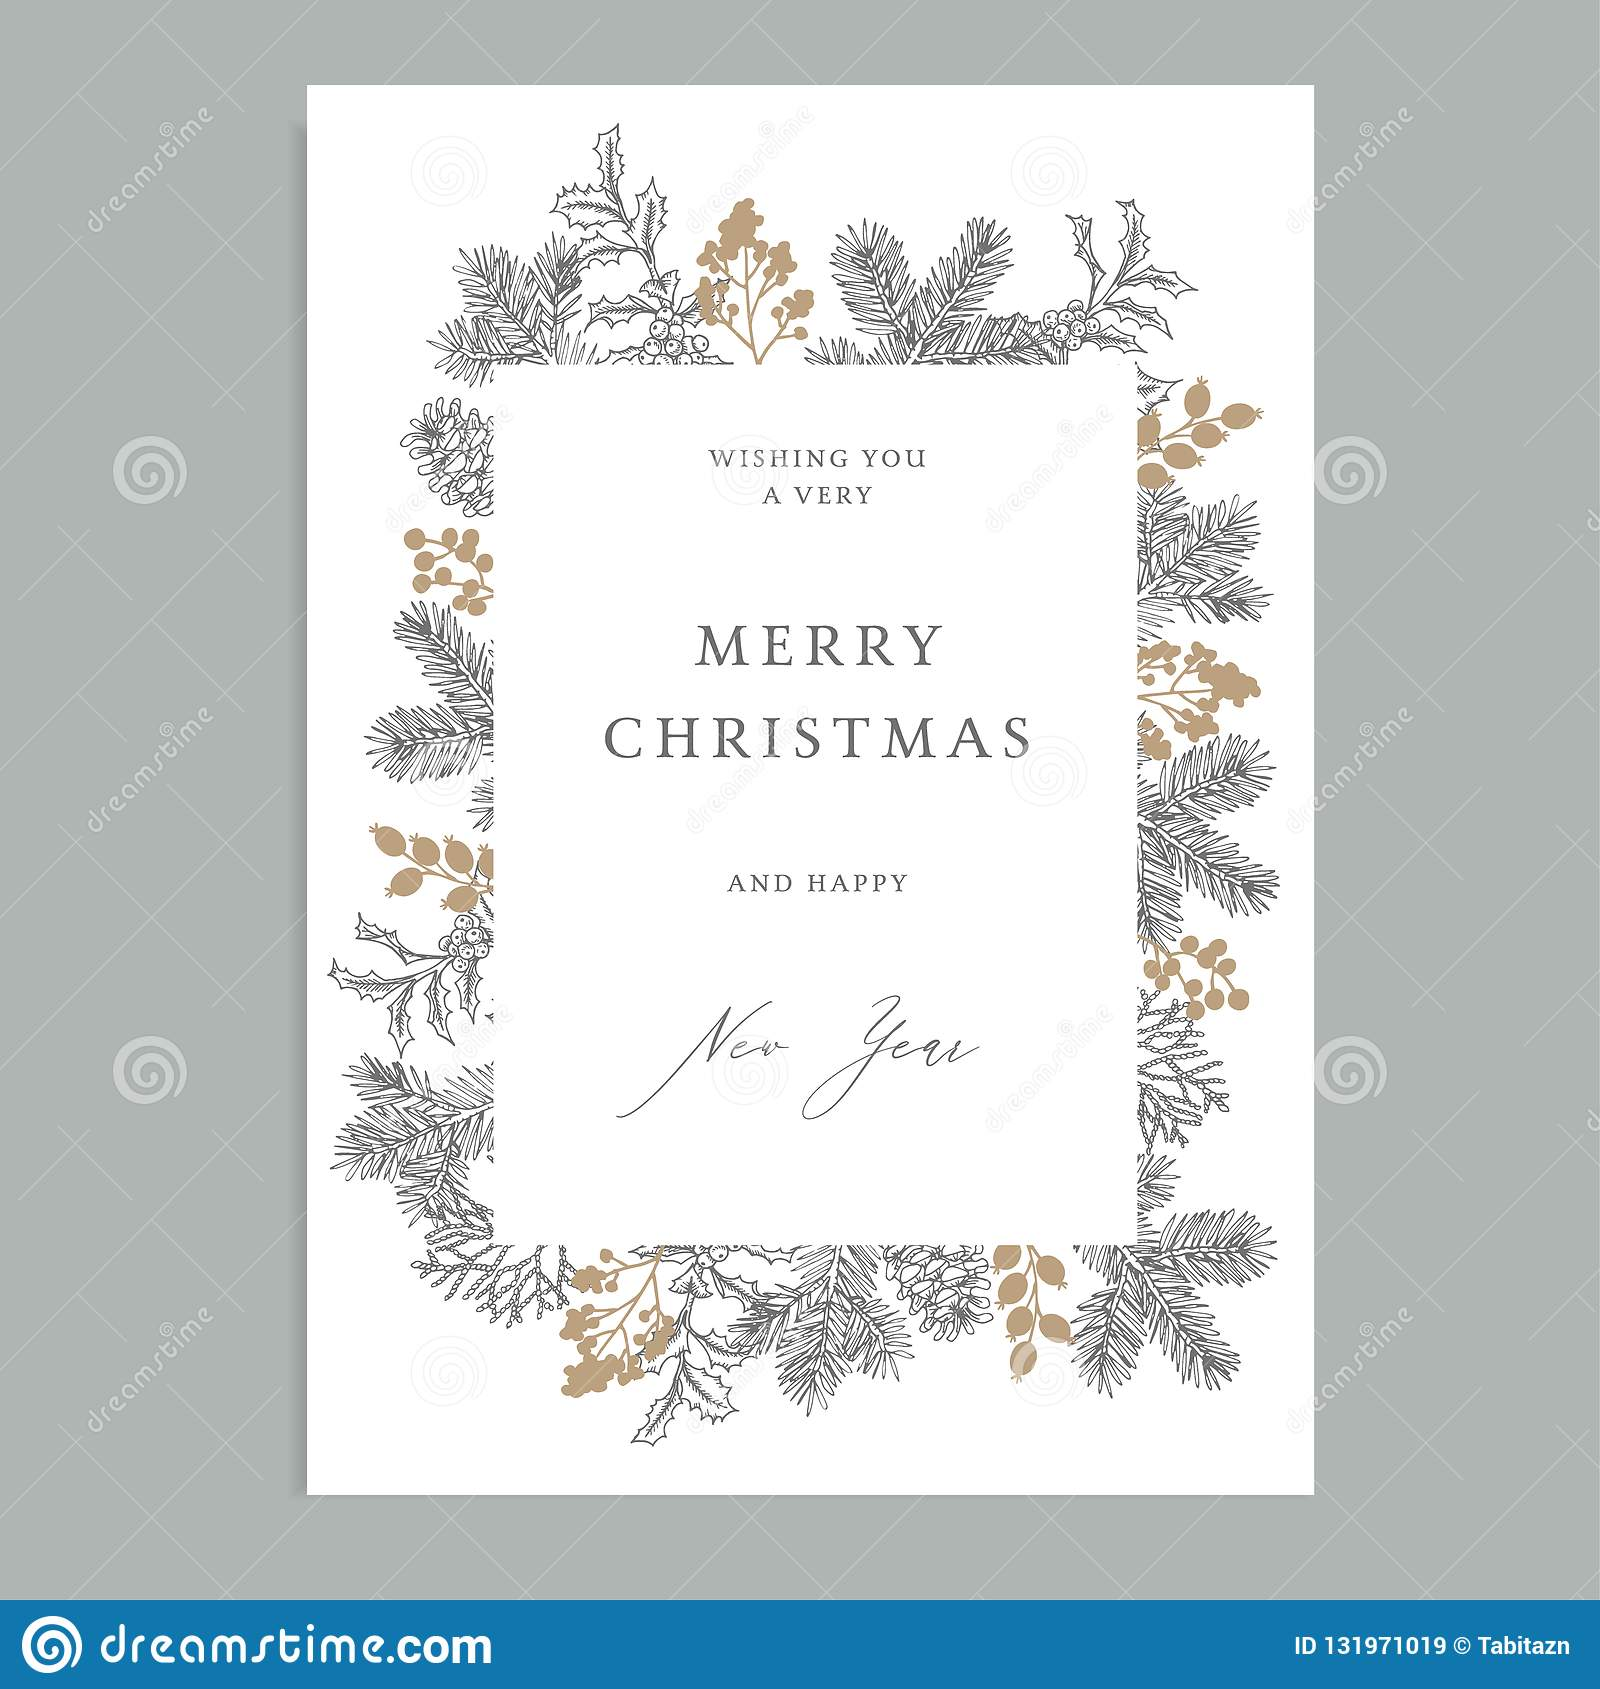 Merry Christmas, Happy New Year vintage floral greeting card, invitation. Holiday frame with evergreen fir tree branches